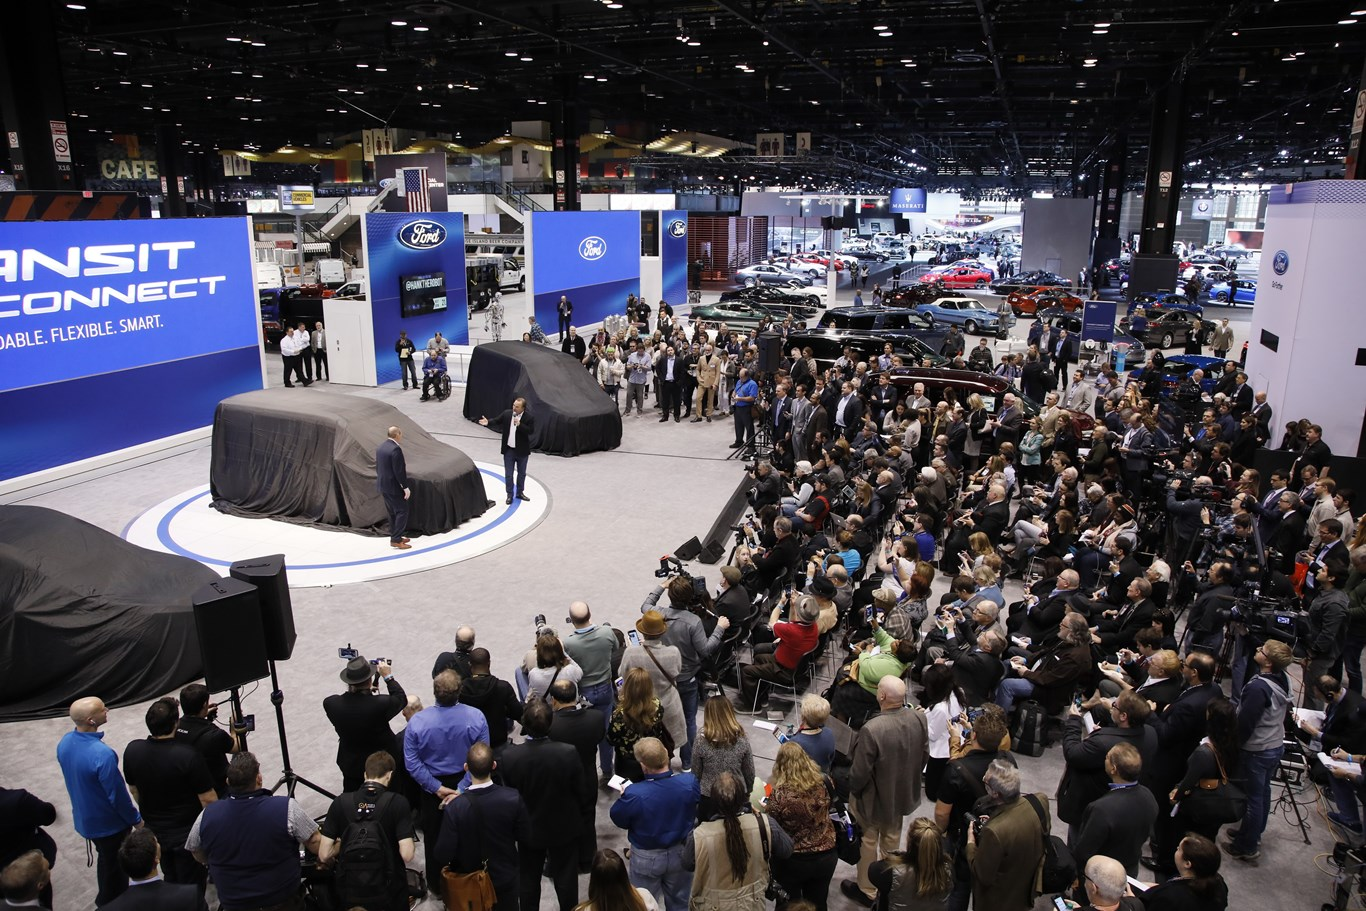 CAS Ford Press Conference Chicago Auto Show - Mccormick place car show